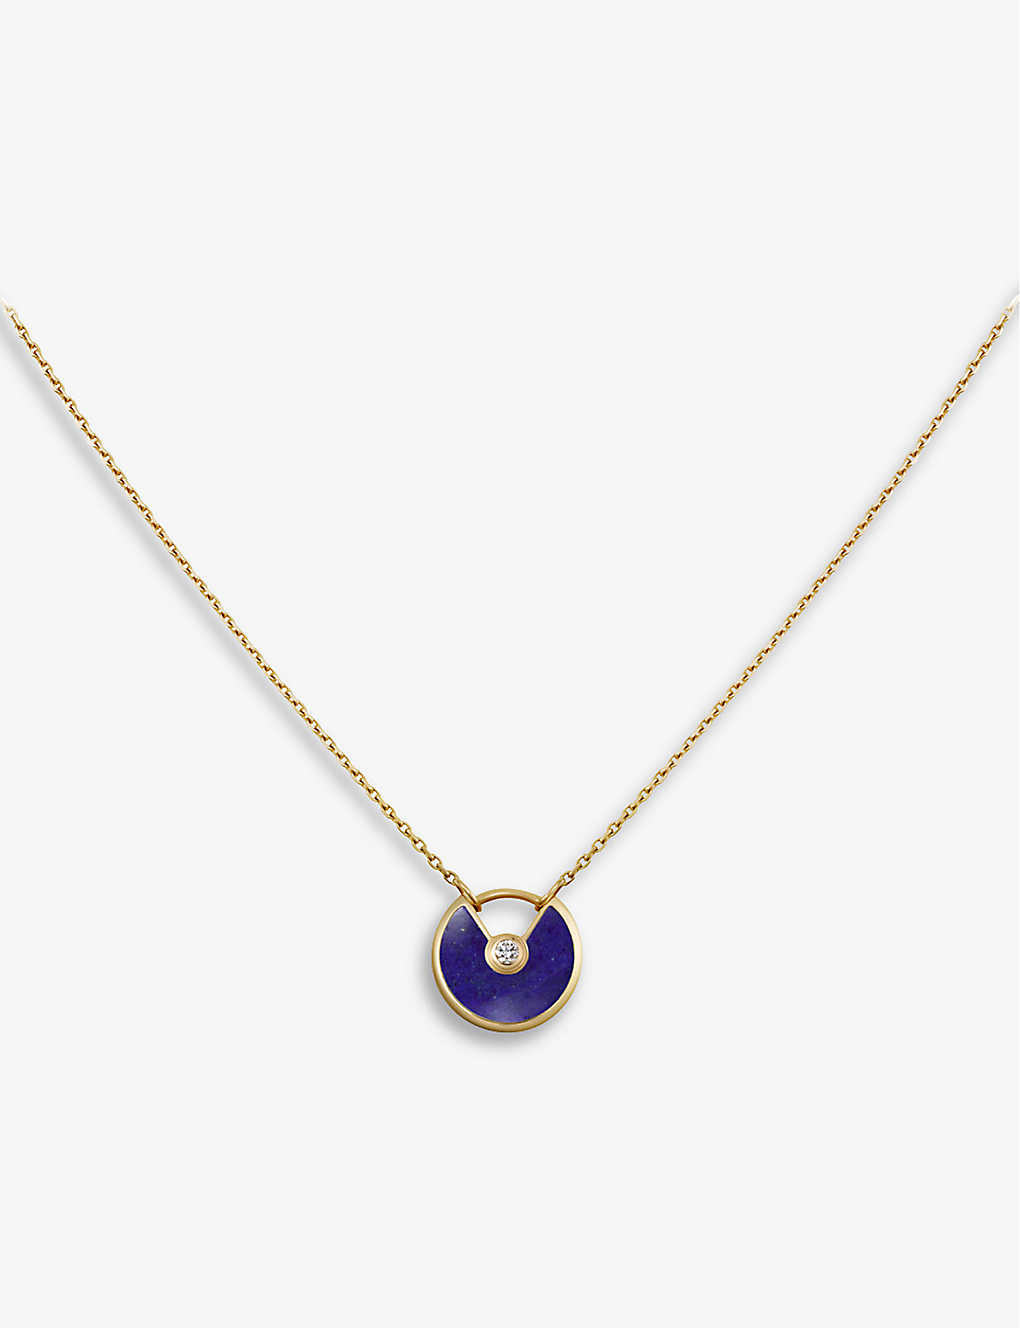 0fae2f67e2bb8 CARTIER - Amulette de Cartier 18ct yellow-gold, lapis lazuli and ...